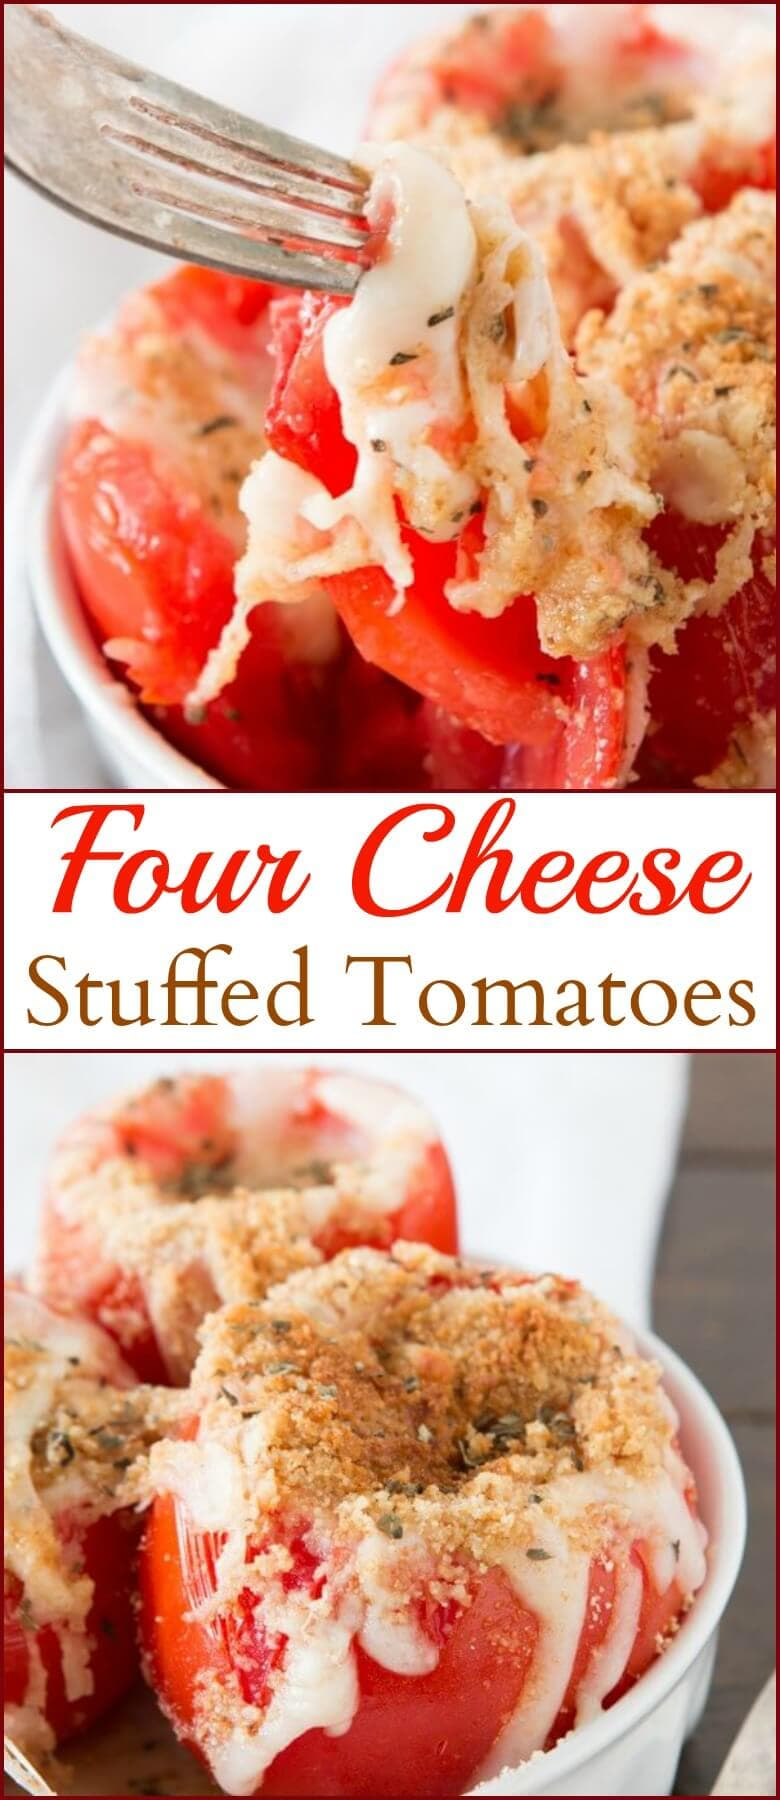 Summer is coming to a close soon but we are still eating up as much fresh fruits and veggies as we can like these four cheese stuffed tomatoes!